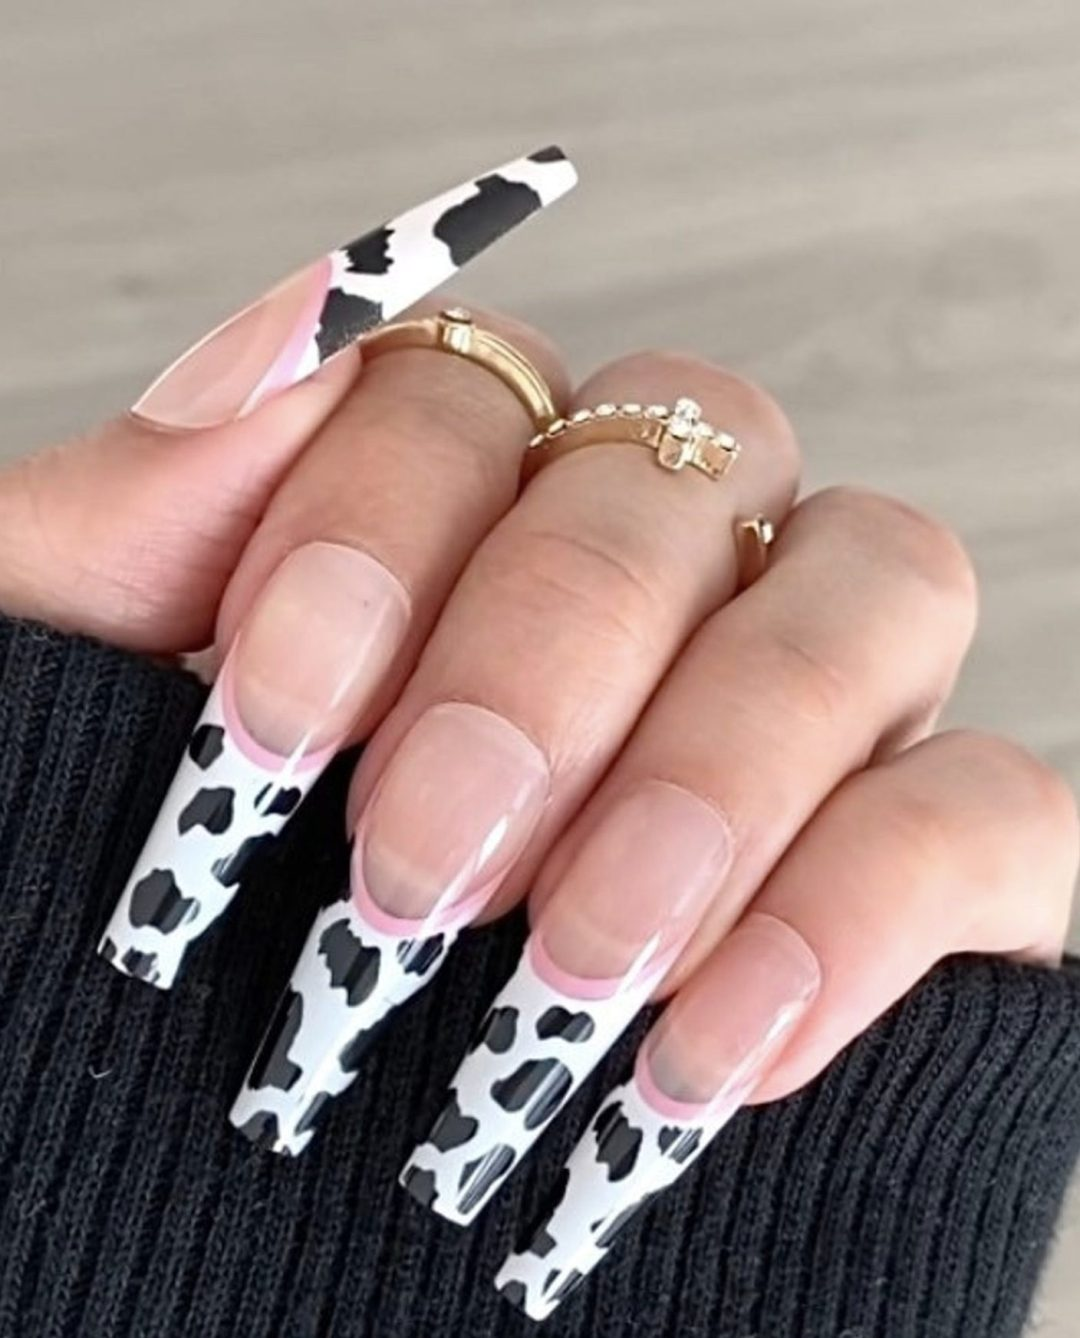 Cow print French tip nails in acrylic coffin shape